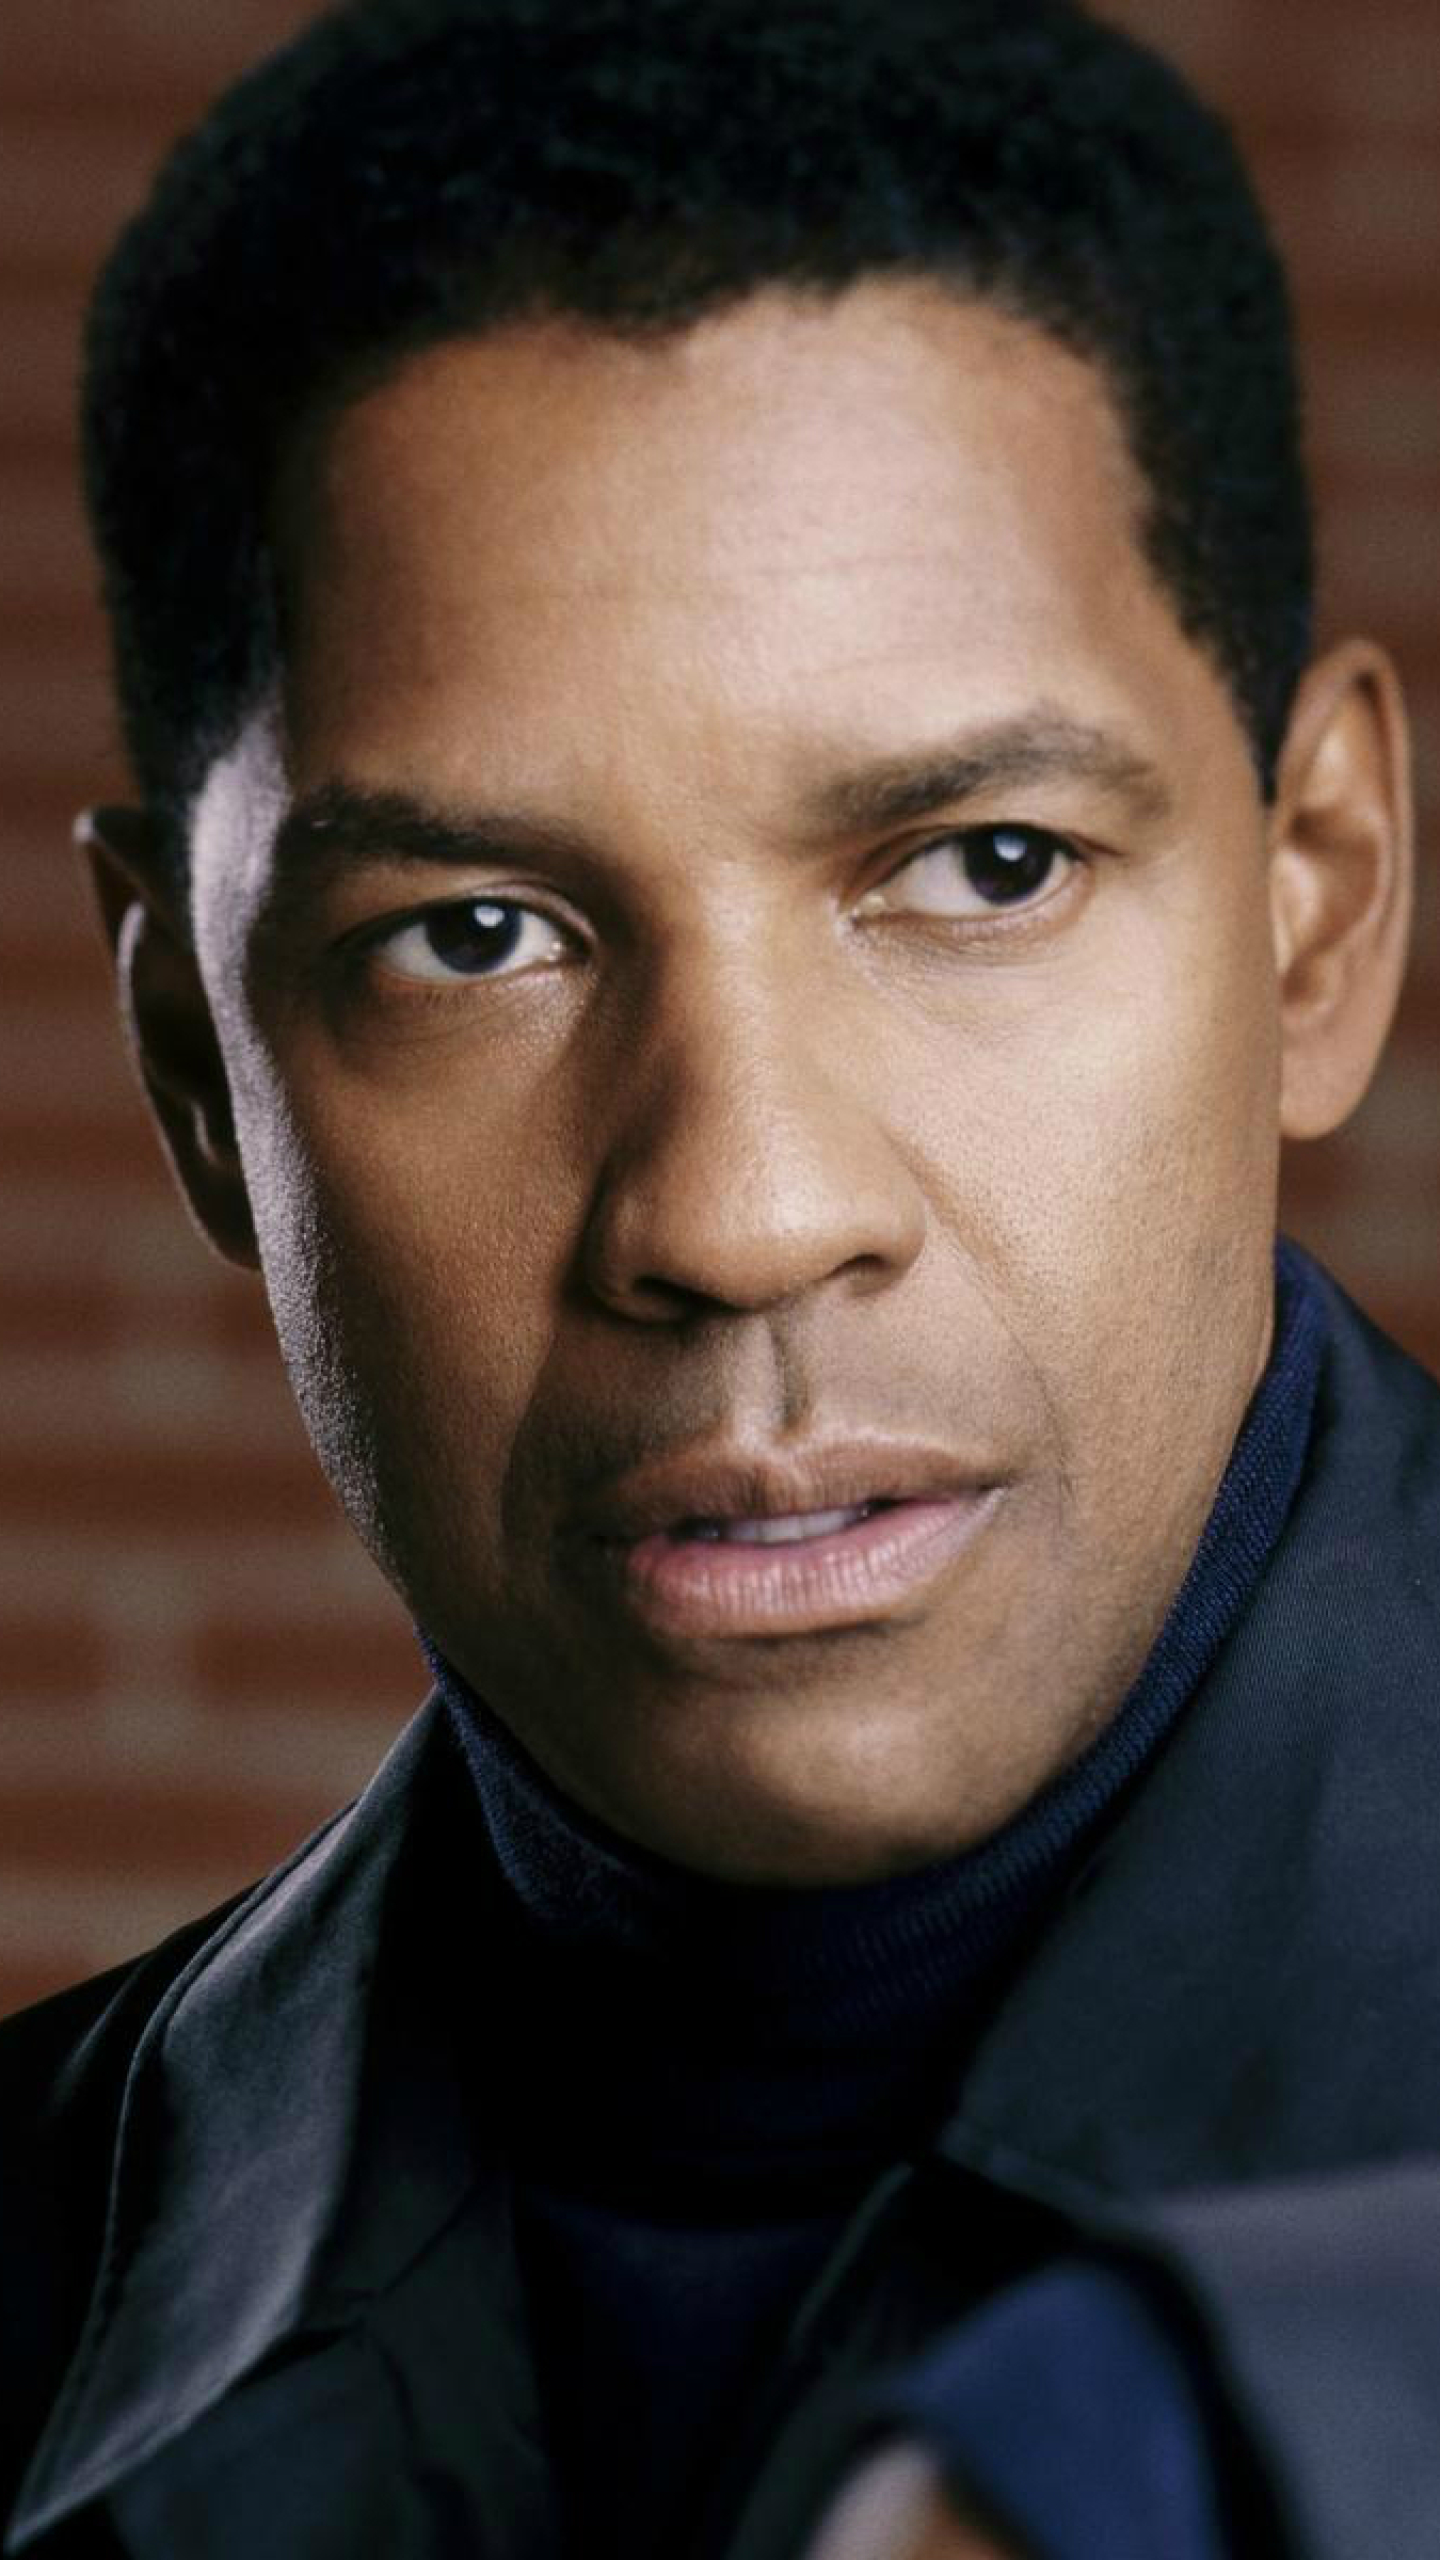 150 Stunningly Creative Name Suggestions for Your New Blog Denzel washington photo shoot